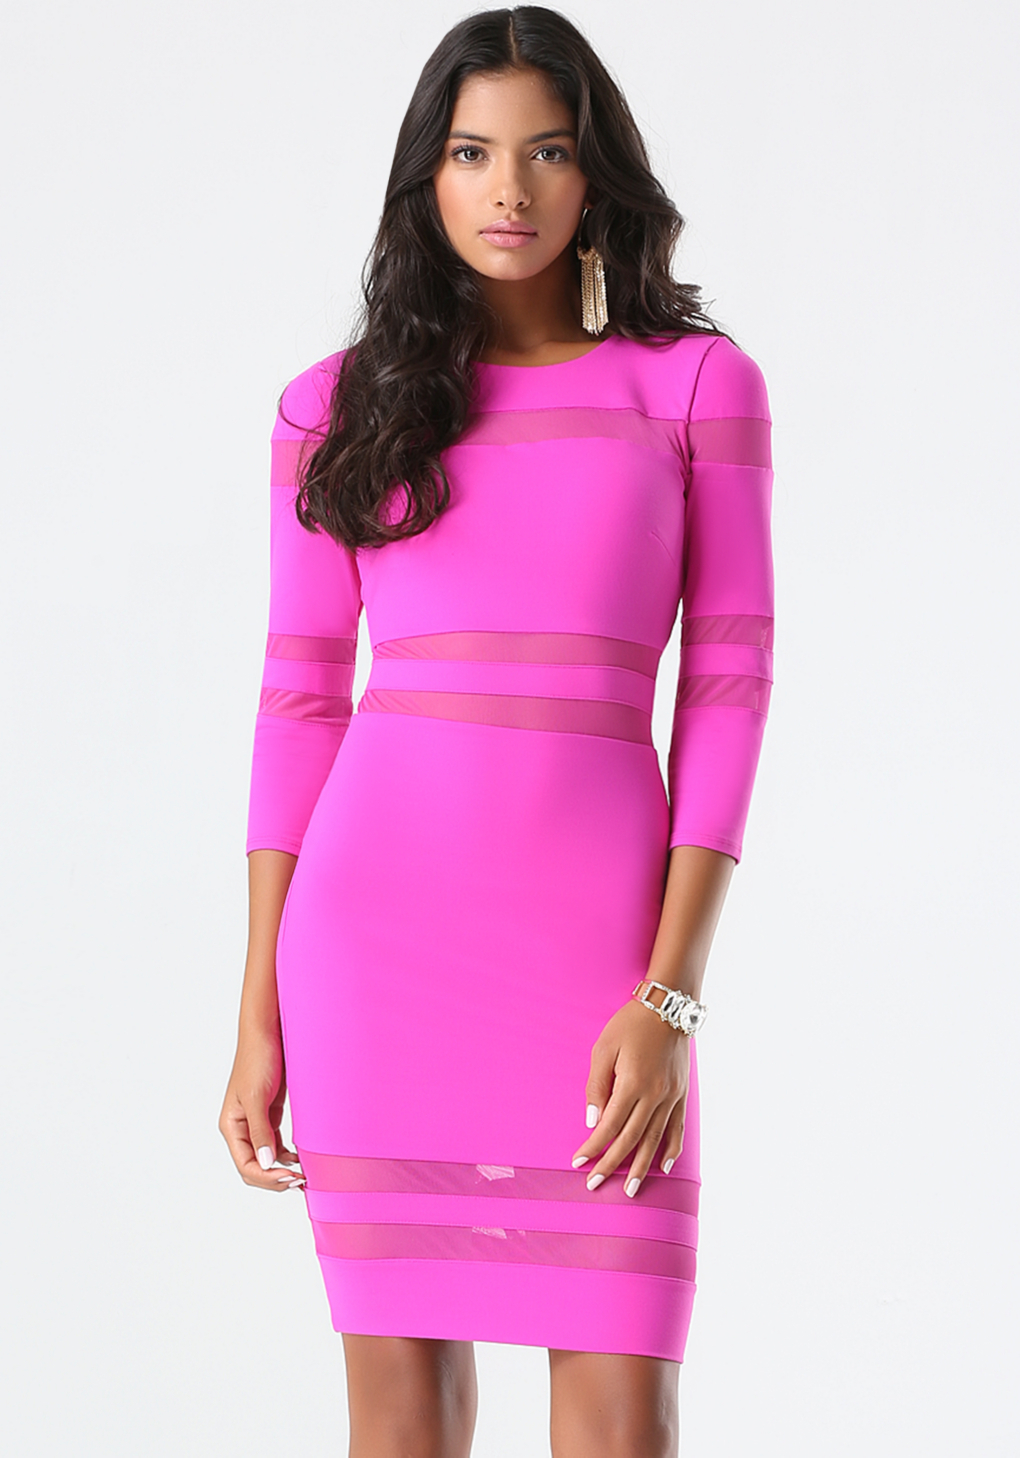 Bebe Mesh Inset Power Knit Dress In Pink Lyst